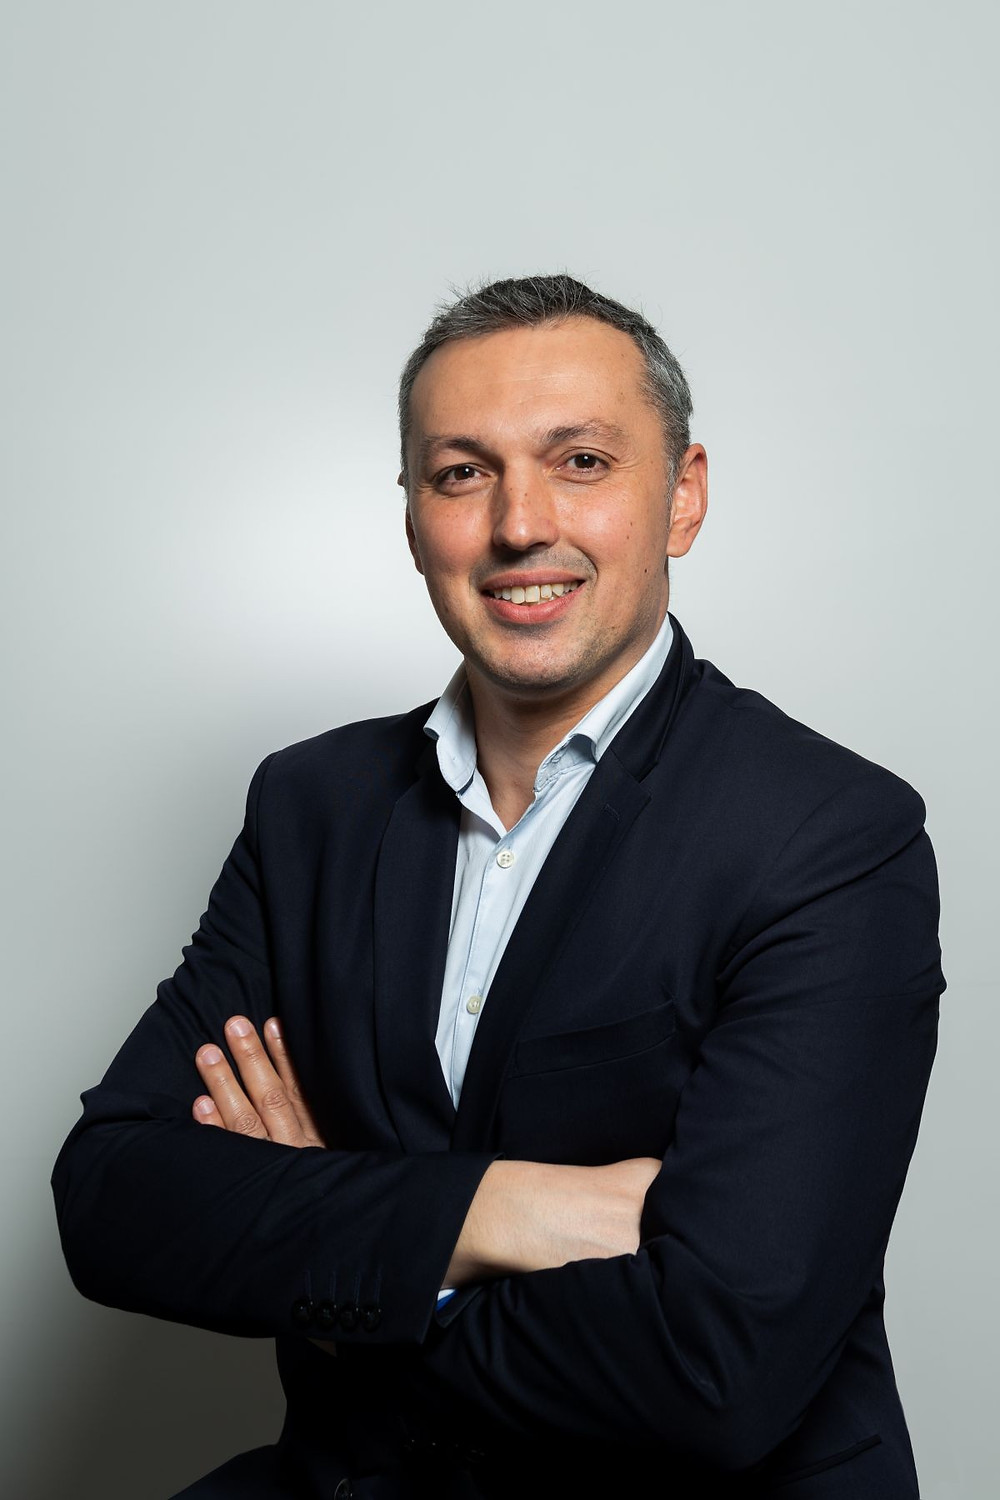 Sébastien Le Goff, Regional Sales Director for France and Southern Europe